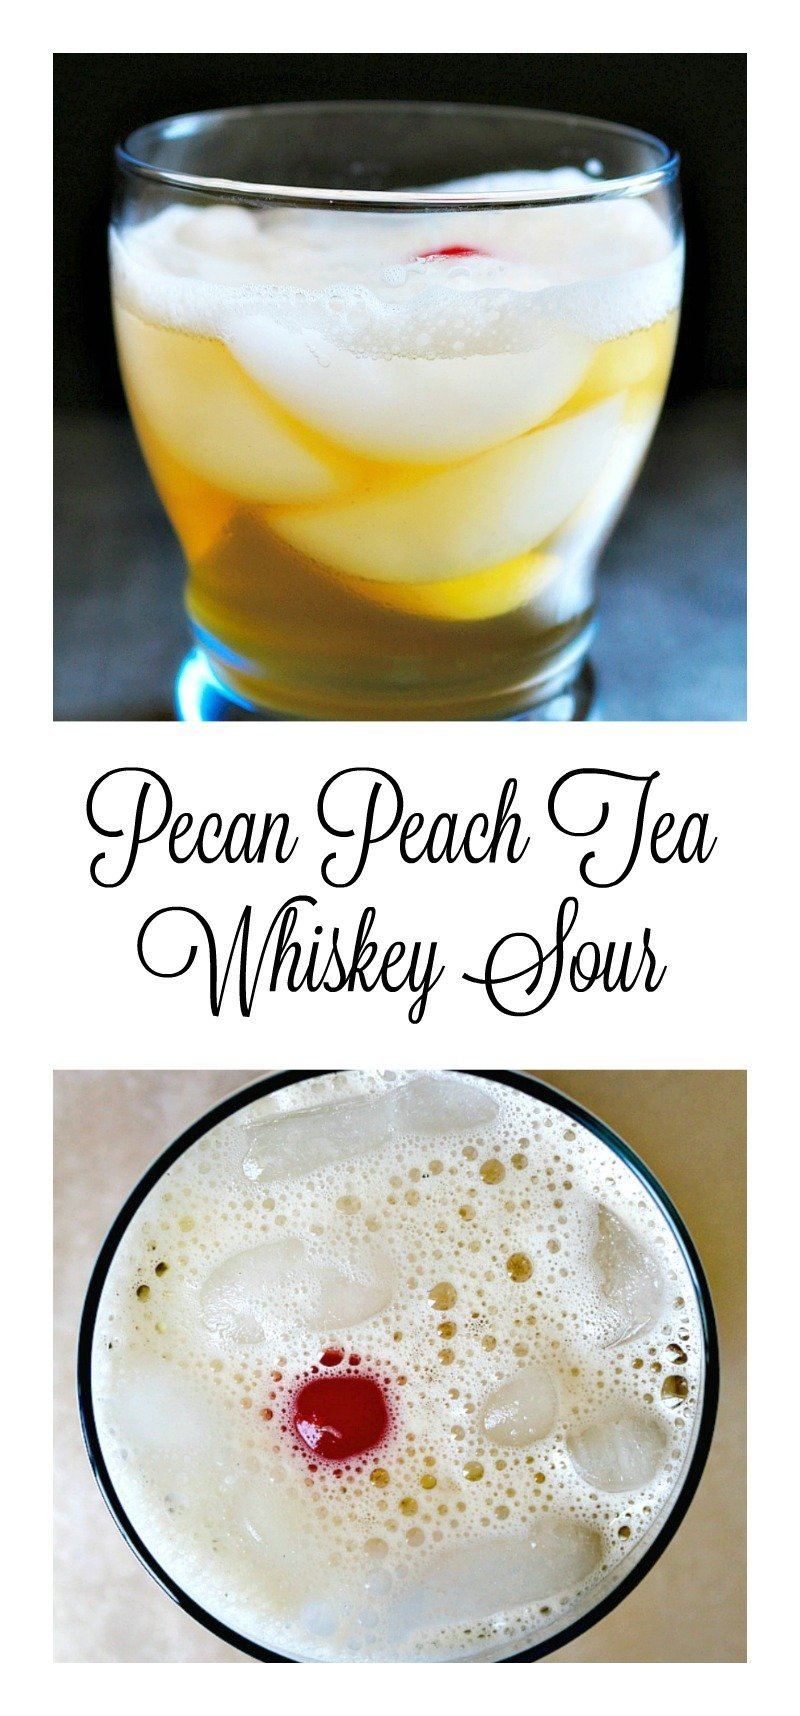 A deliciously smooth spiked sweet tea sour made with Old Camp Whiskey, with the flavors of pecan and peach.